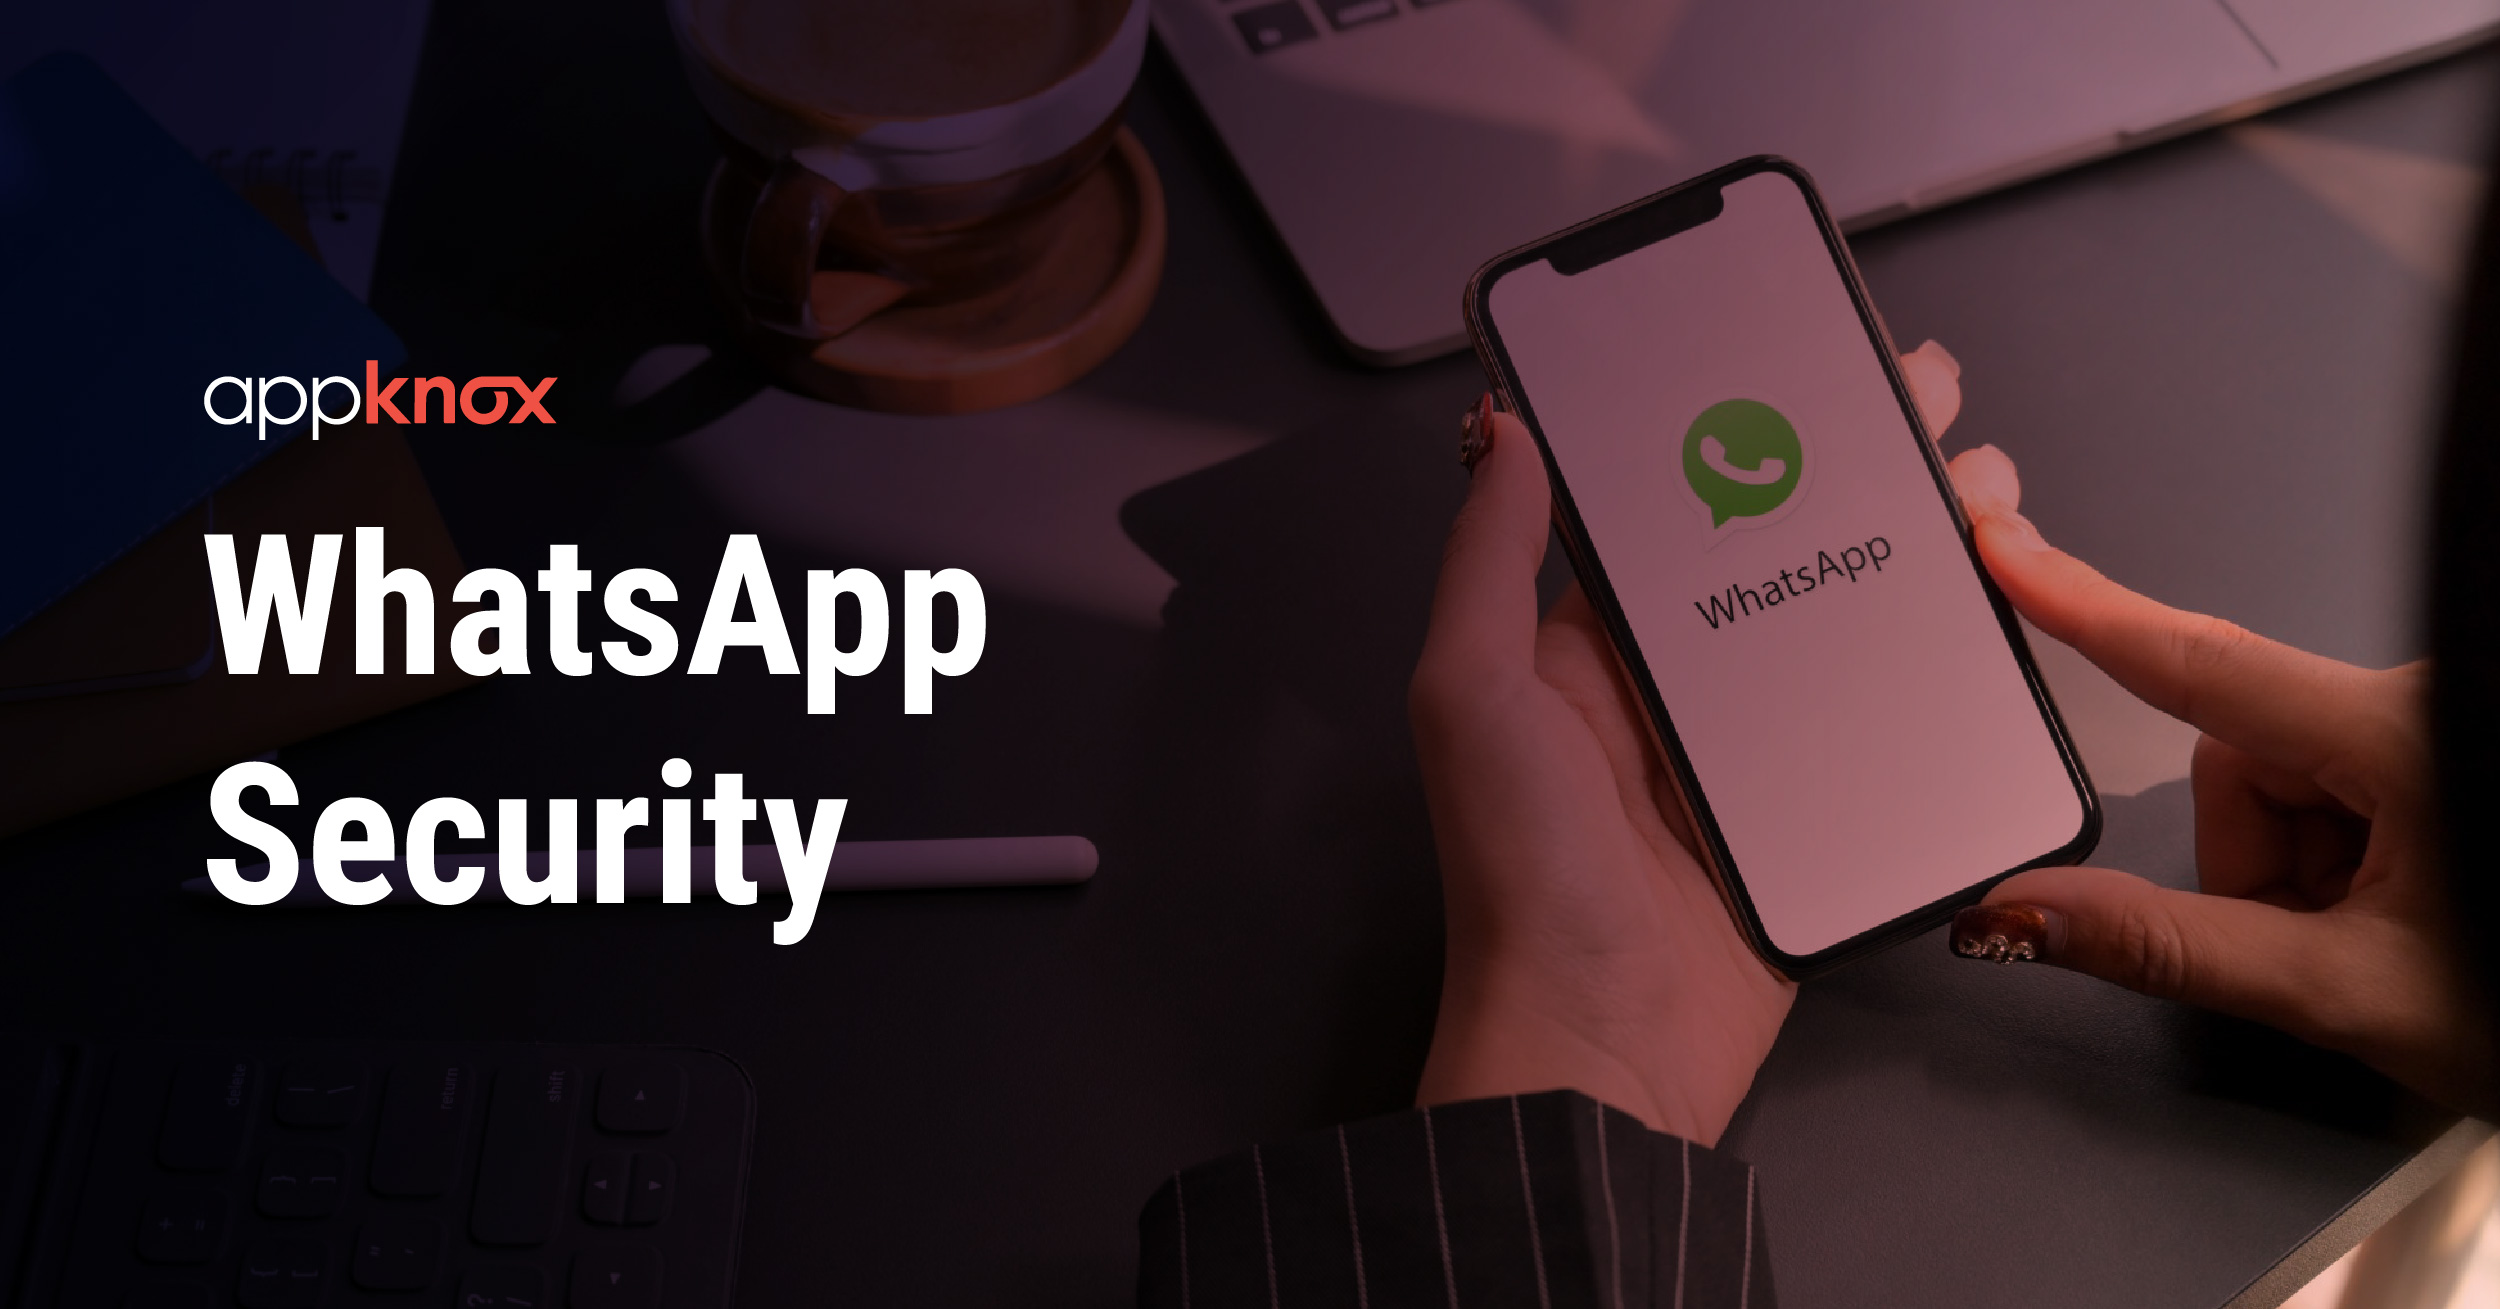 Whatsapp security and is your information private and secure?